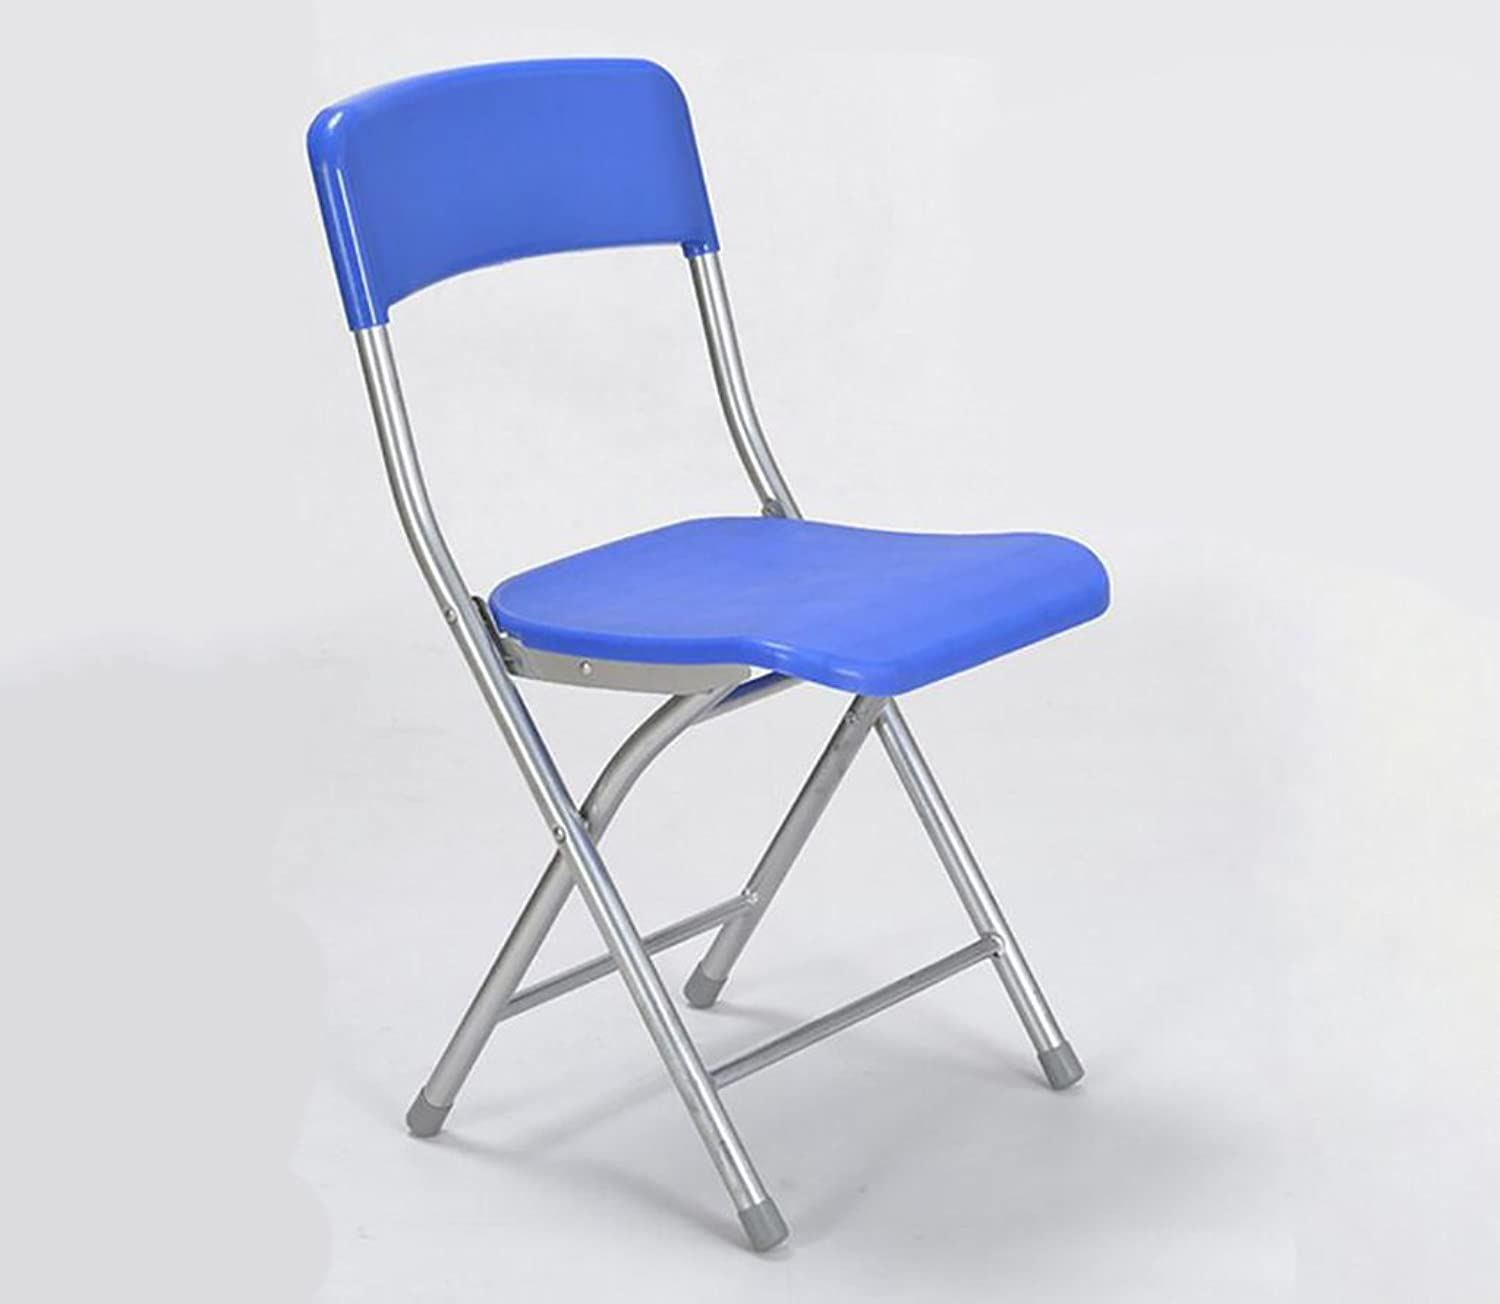 Chair Folding Training Student Chair Meeting Chair Backrest Computer Chair Thickened Plastic Chair